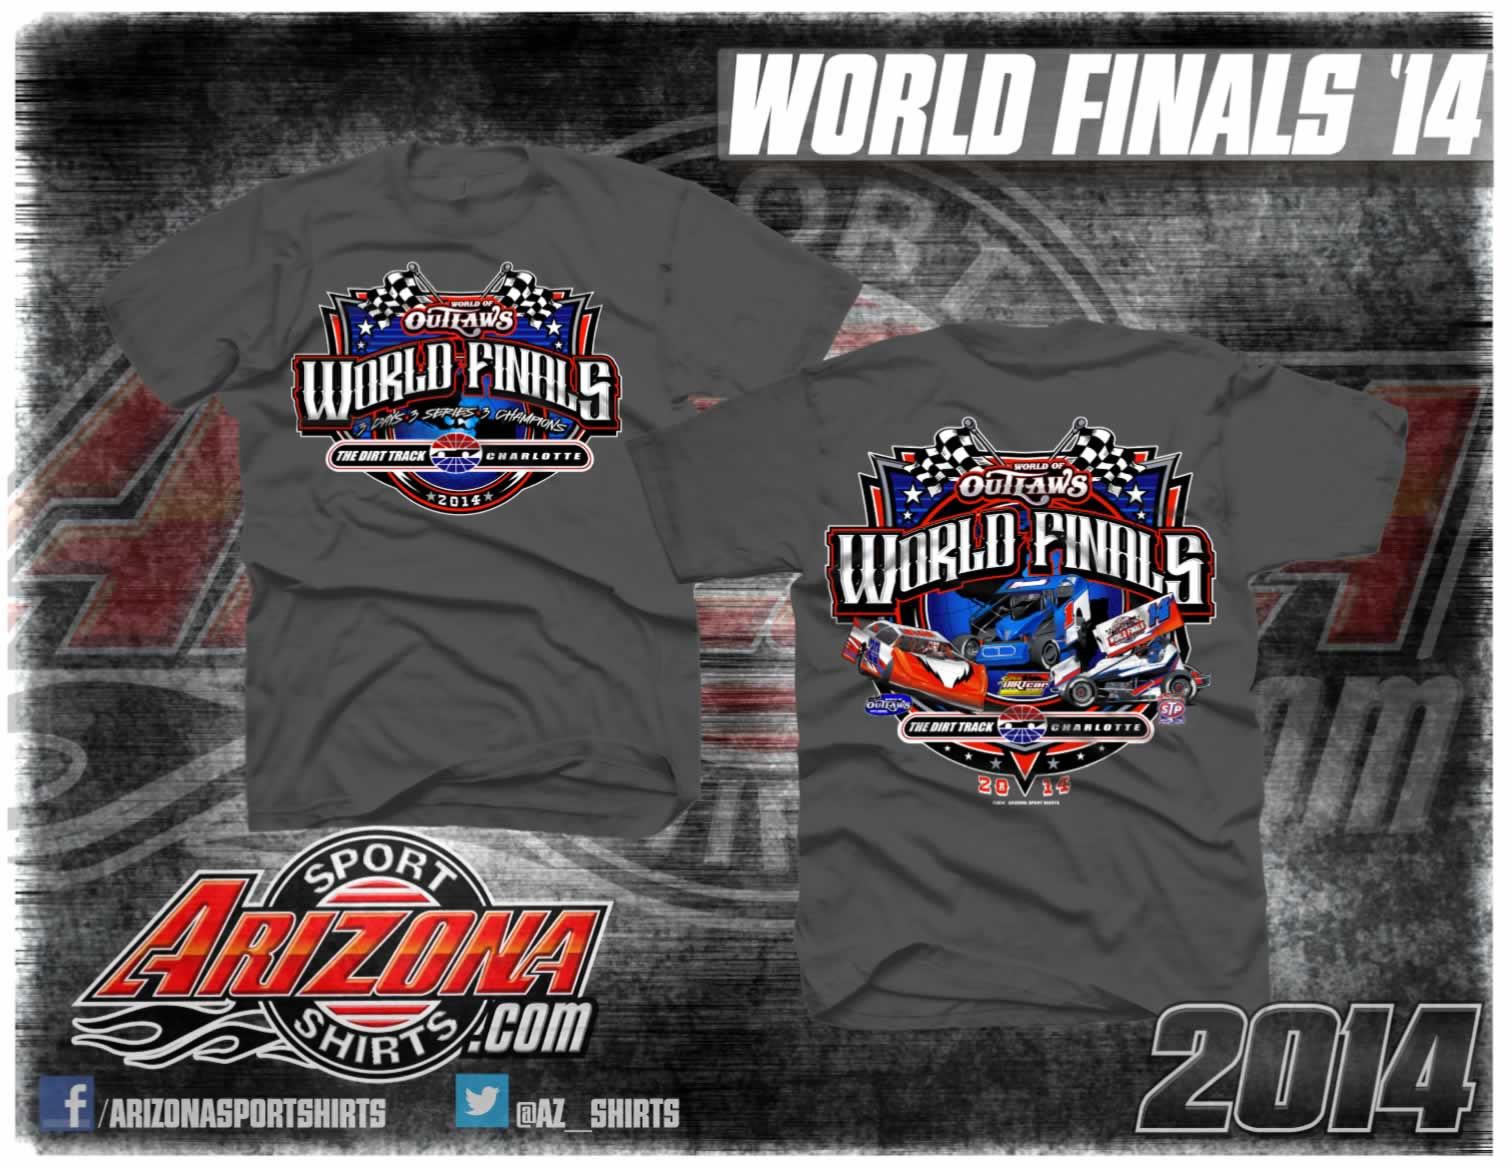 woo-world-finals-14